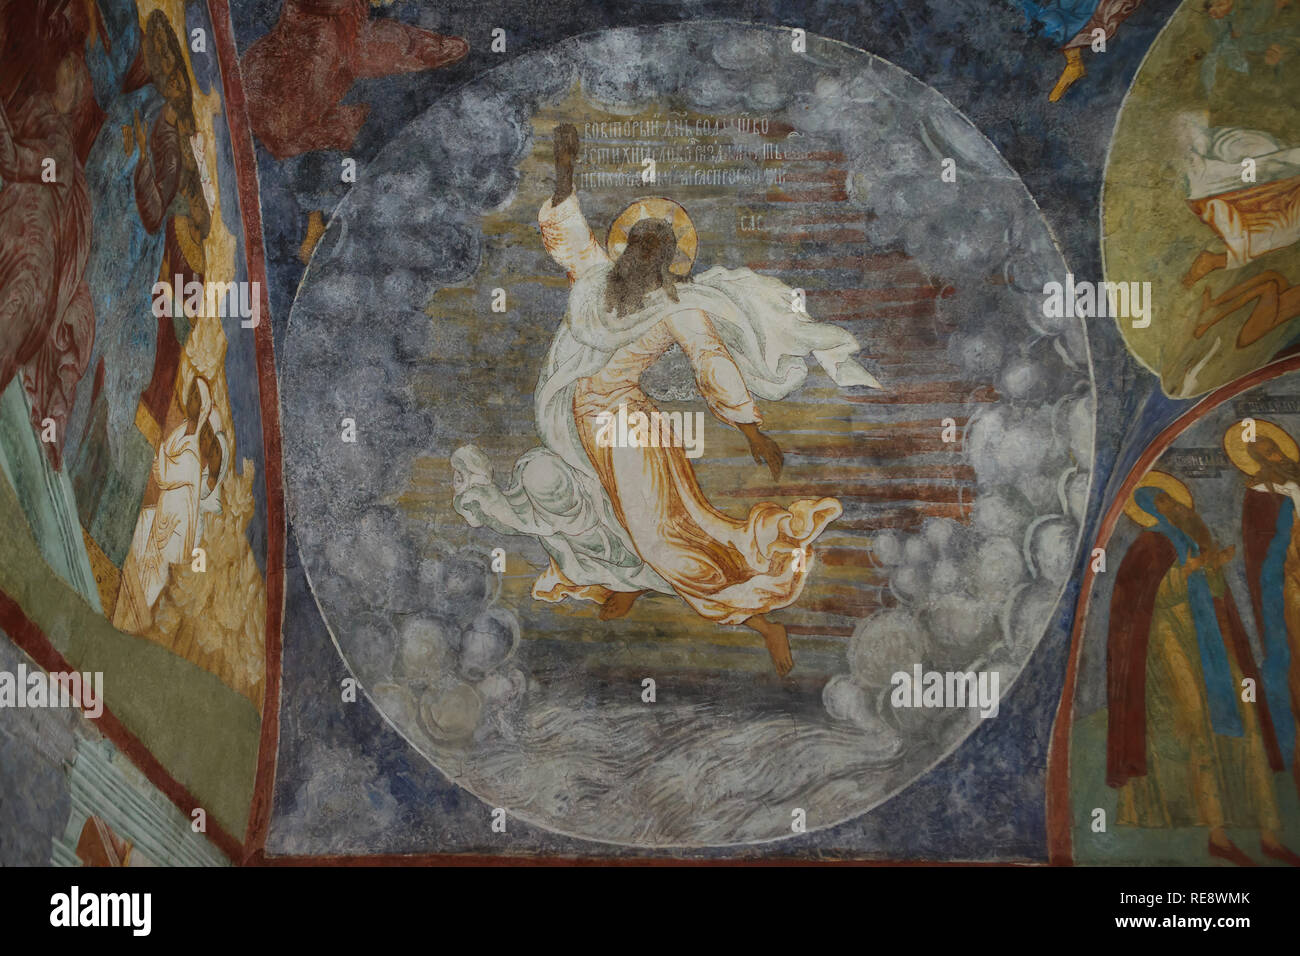 God the Father creating the firmament and dividing the waters in the second day of Creation. Fresco by Russian icon painters Gury Nikitin and Sila Savin (1680) in the north gallery (papert) of the Church of Elijah the Prophet in Yaroslavl, Russia. - Stock Image